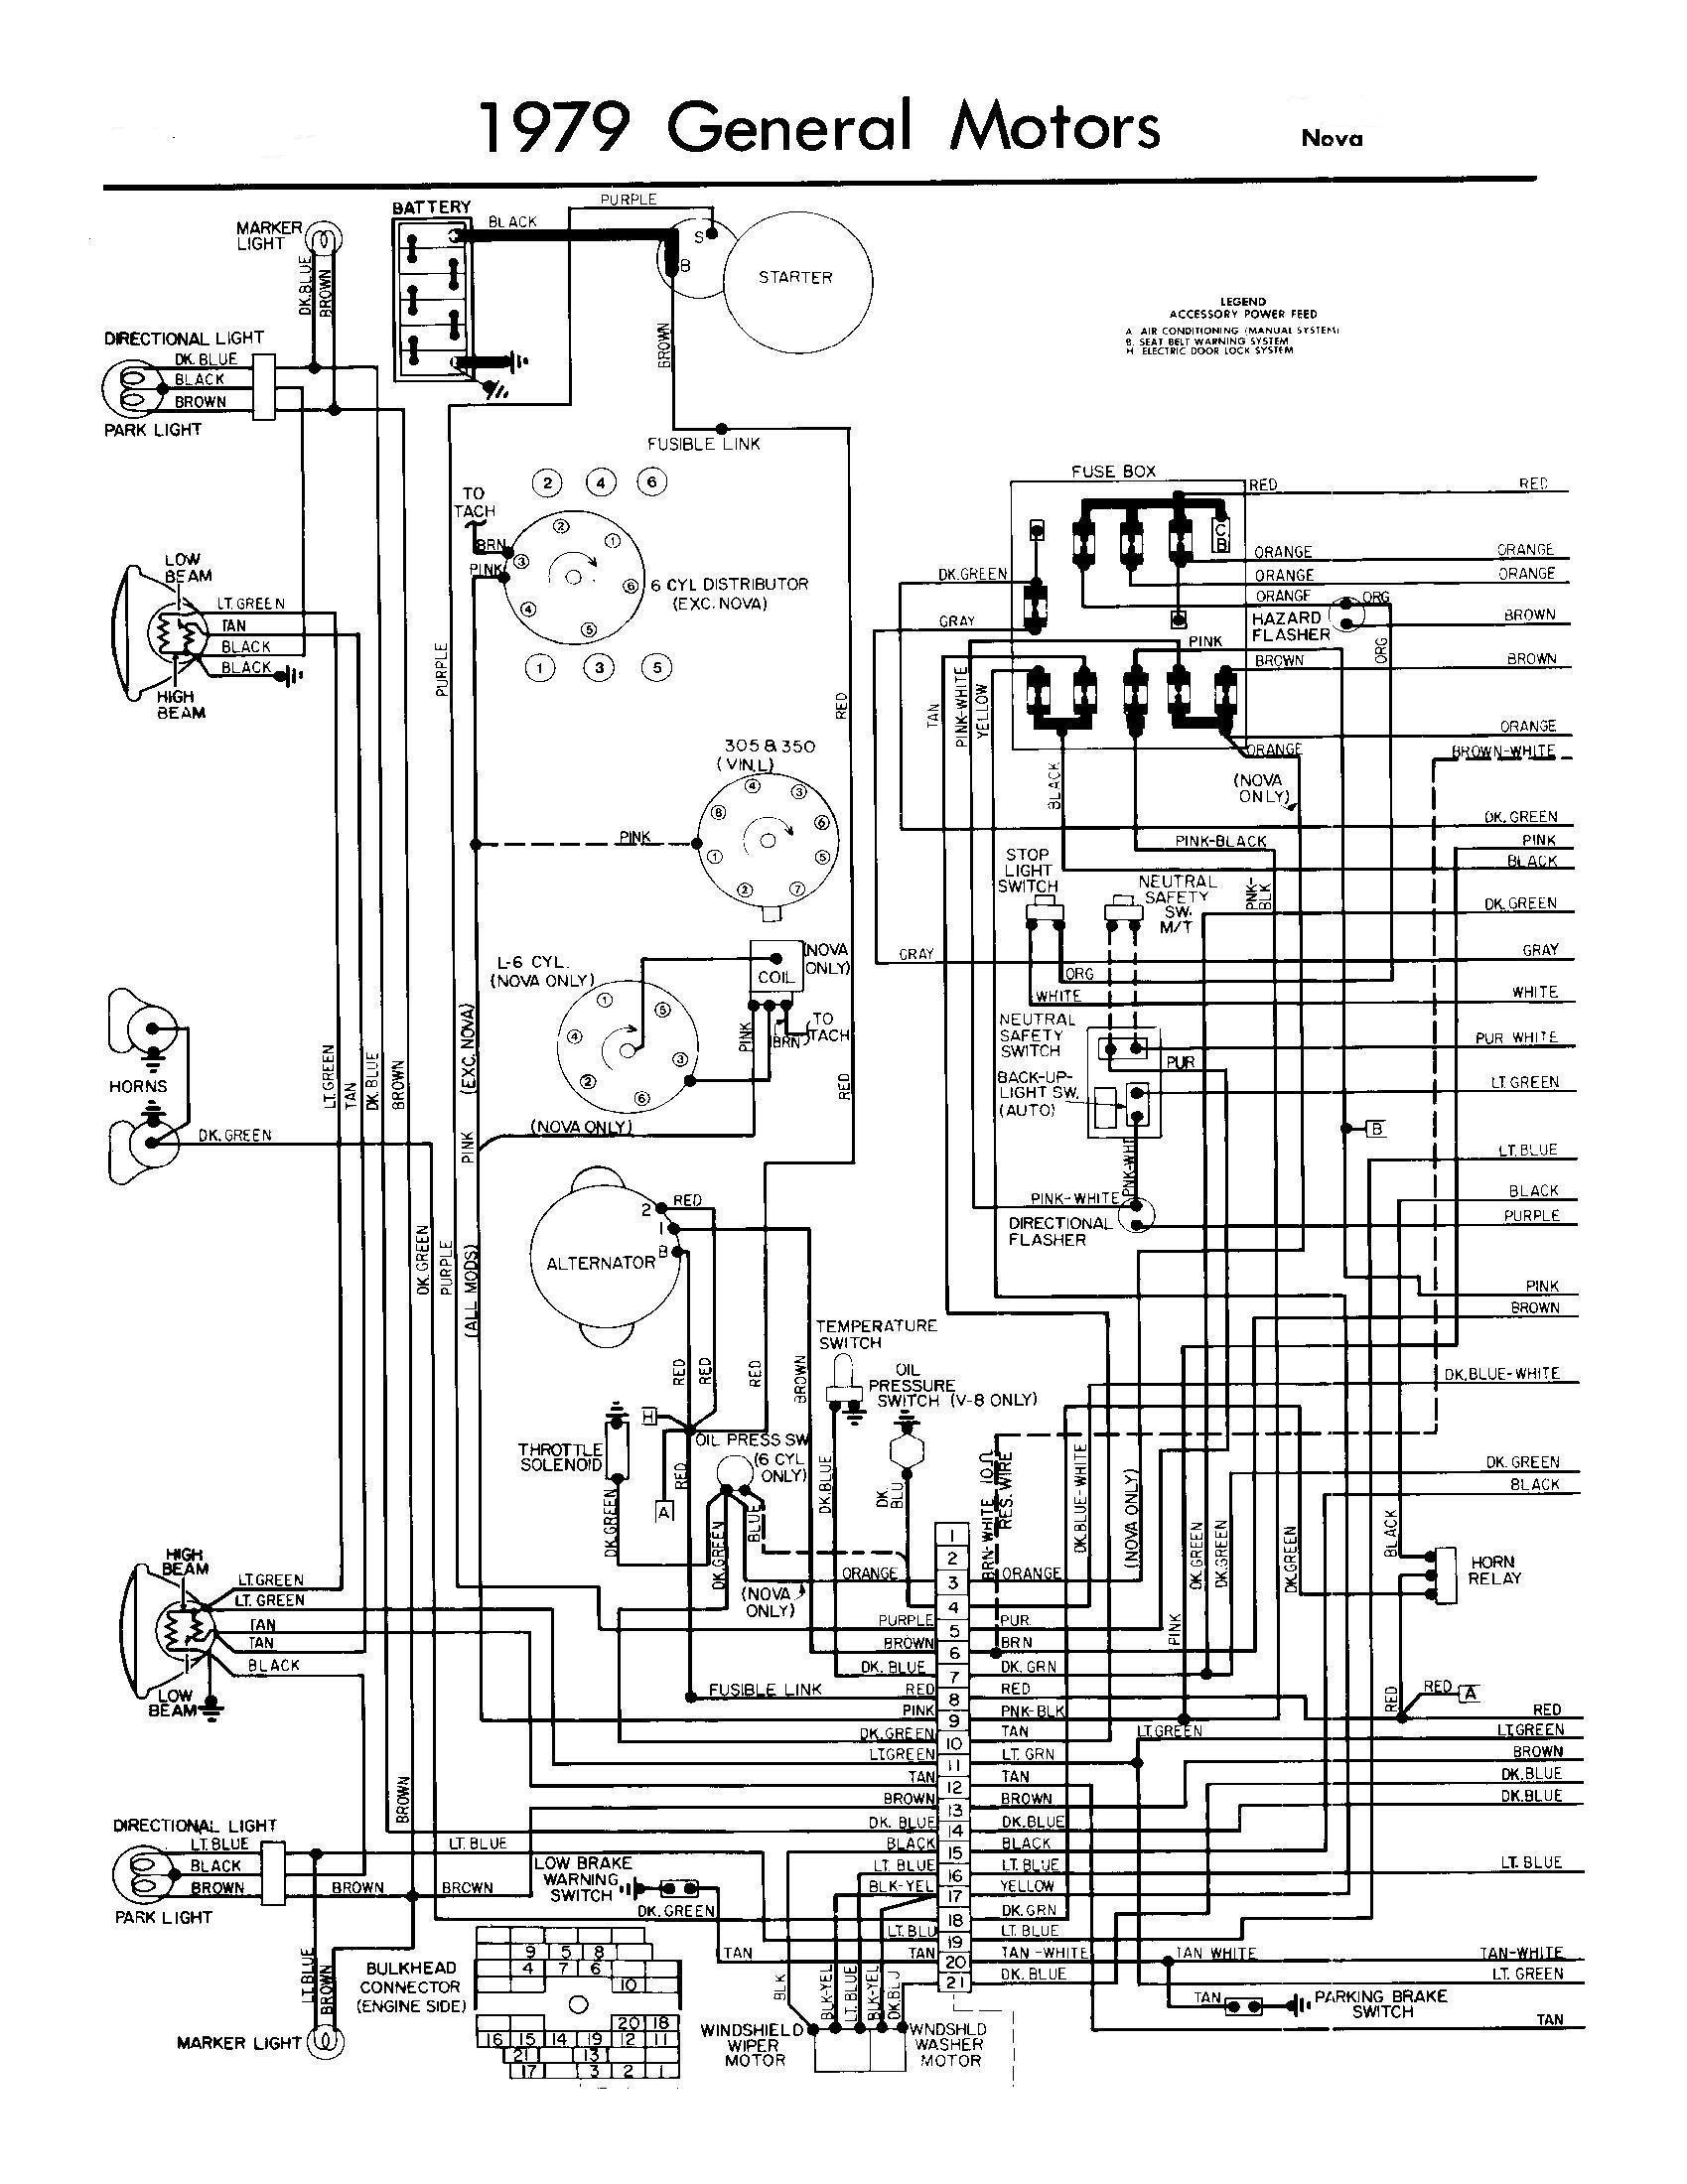 m1009 dash wiring diagram